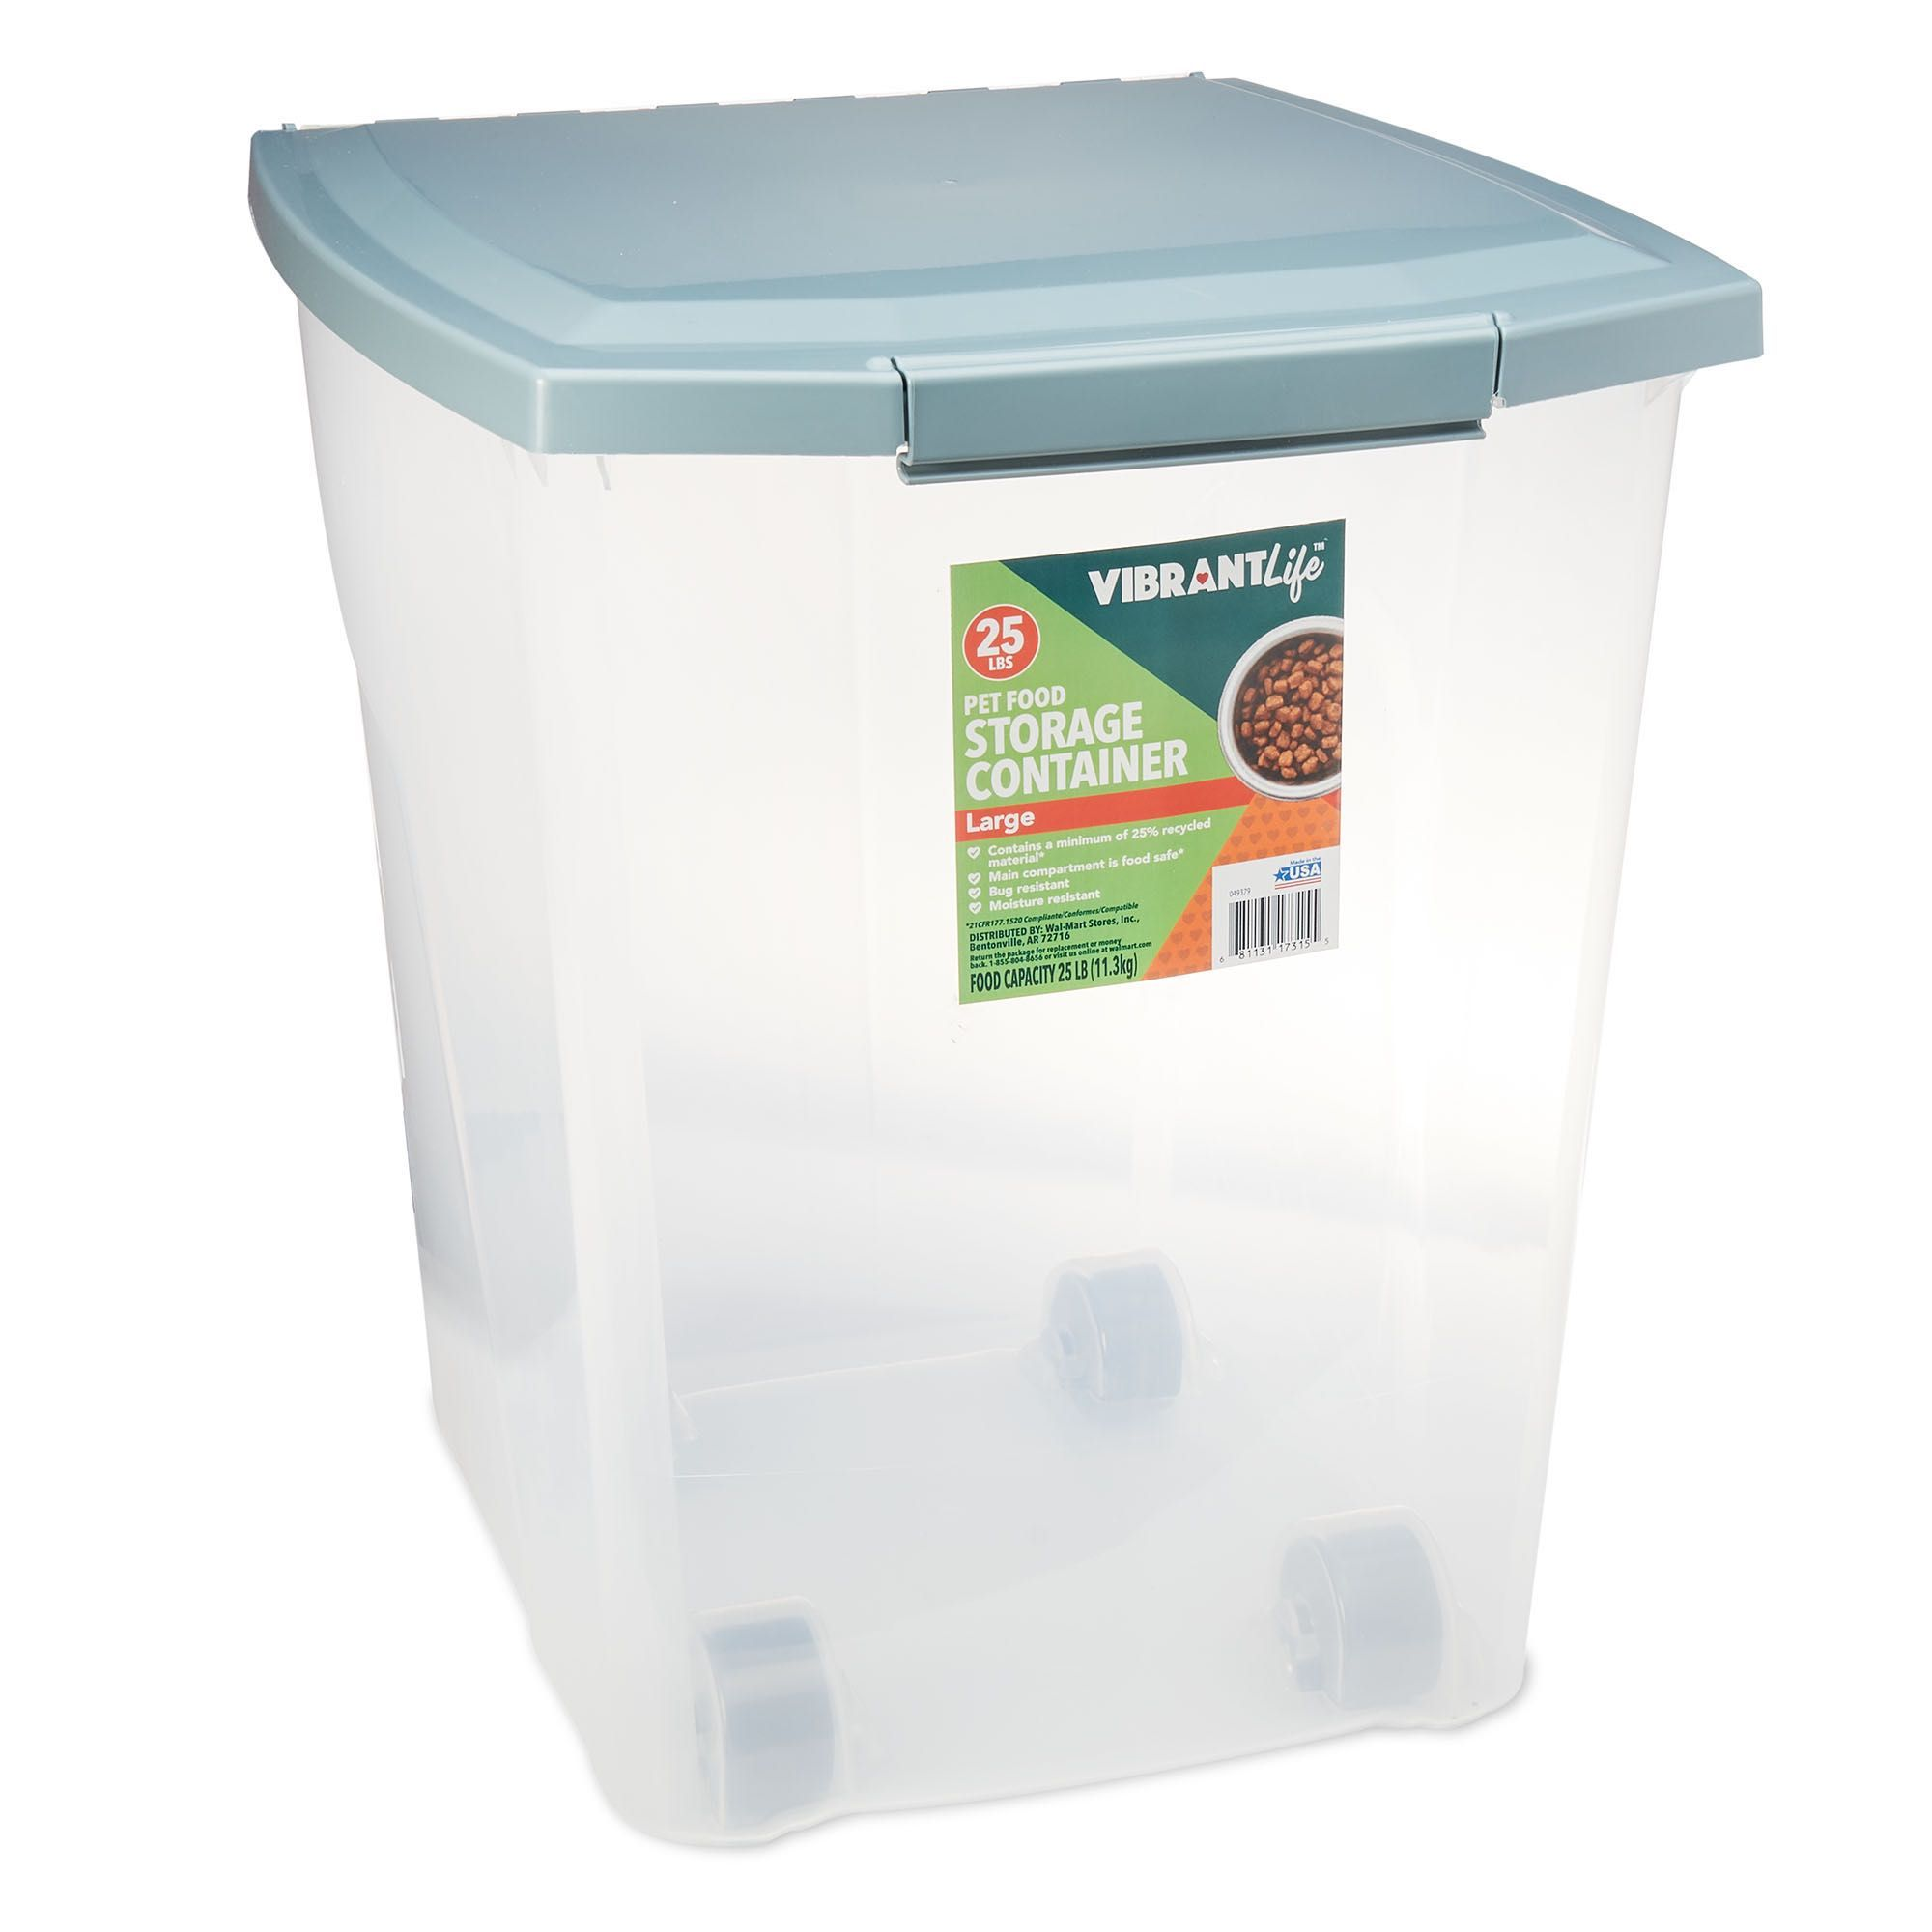 Vibrant life plastic pet food storage container with